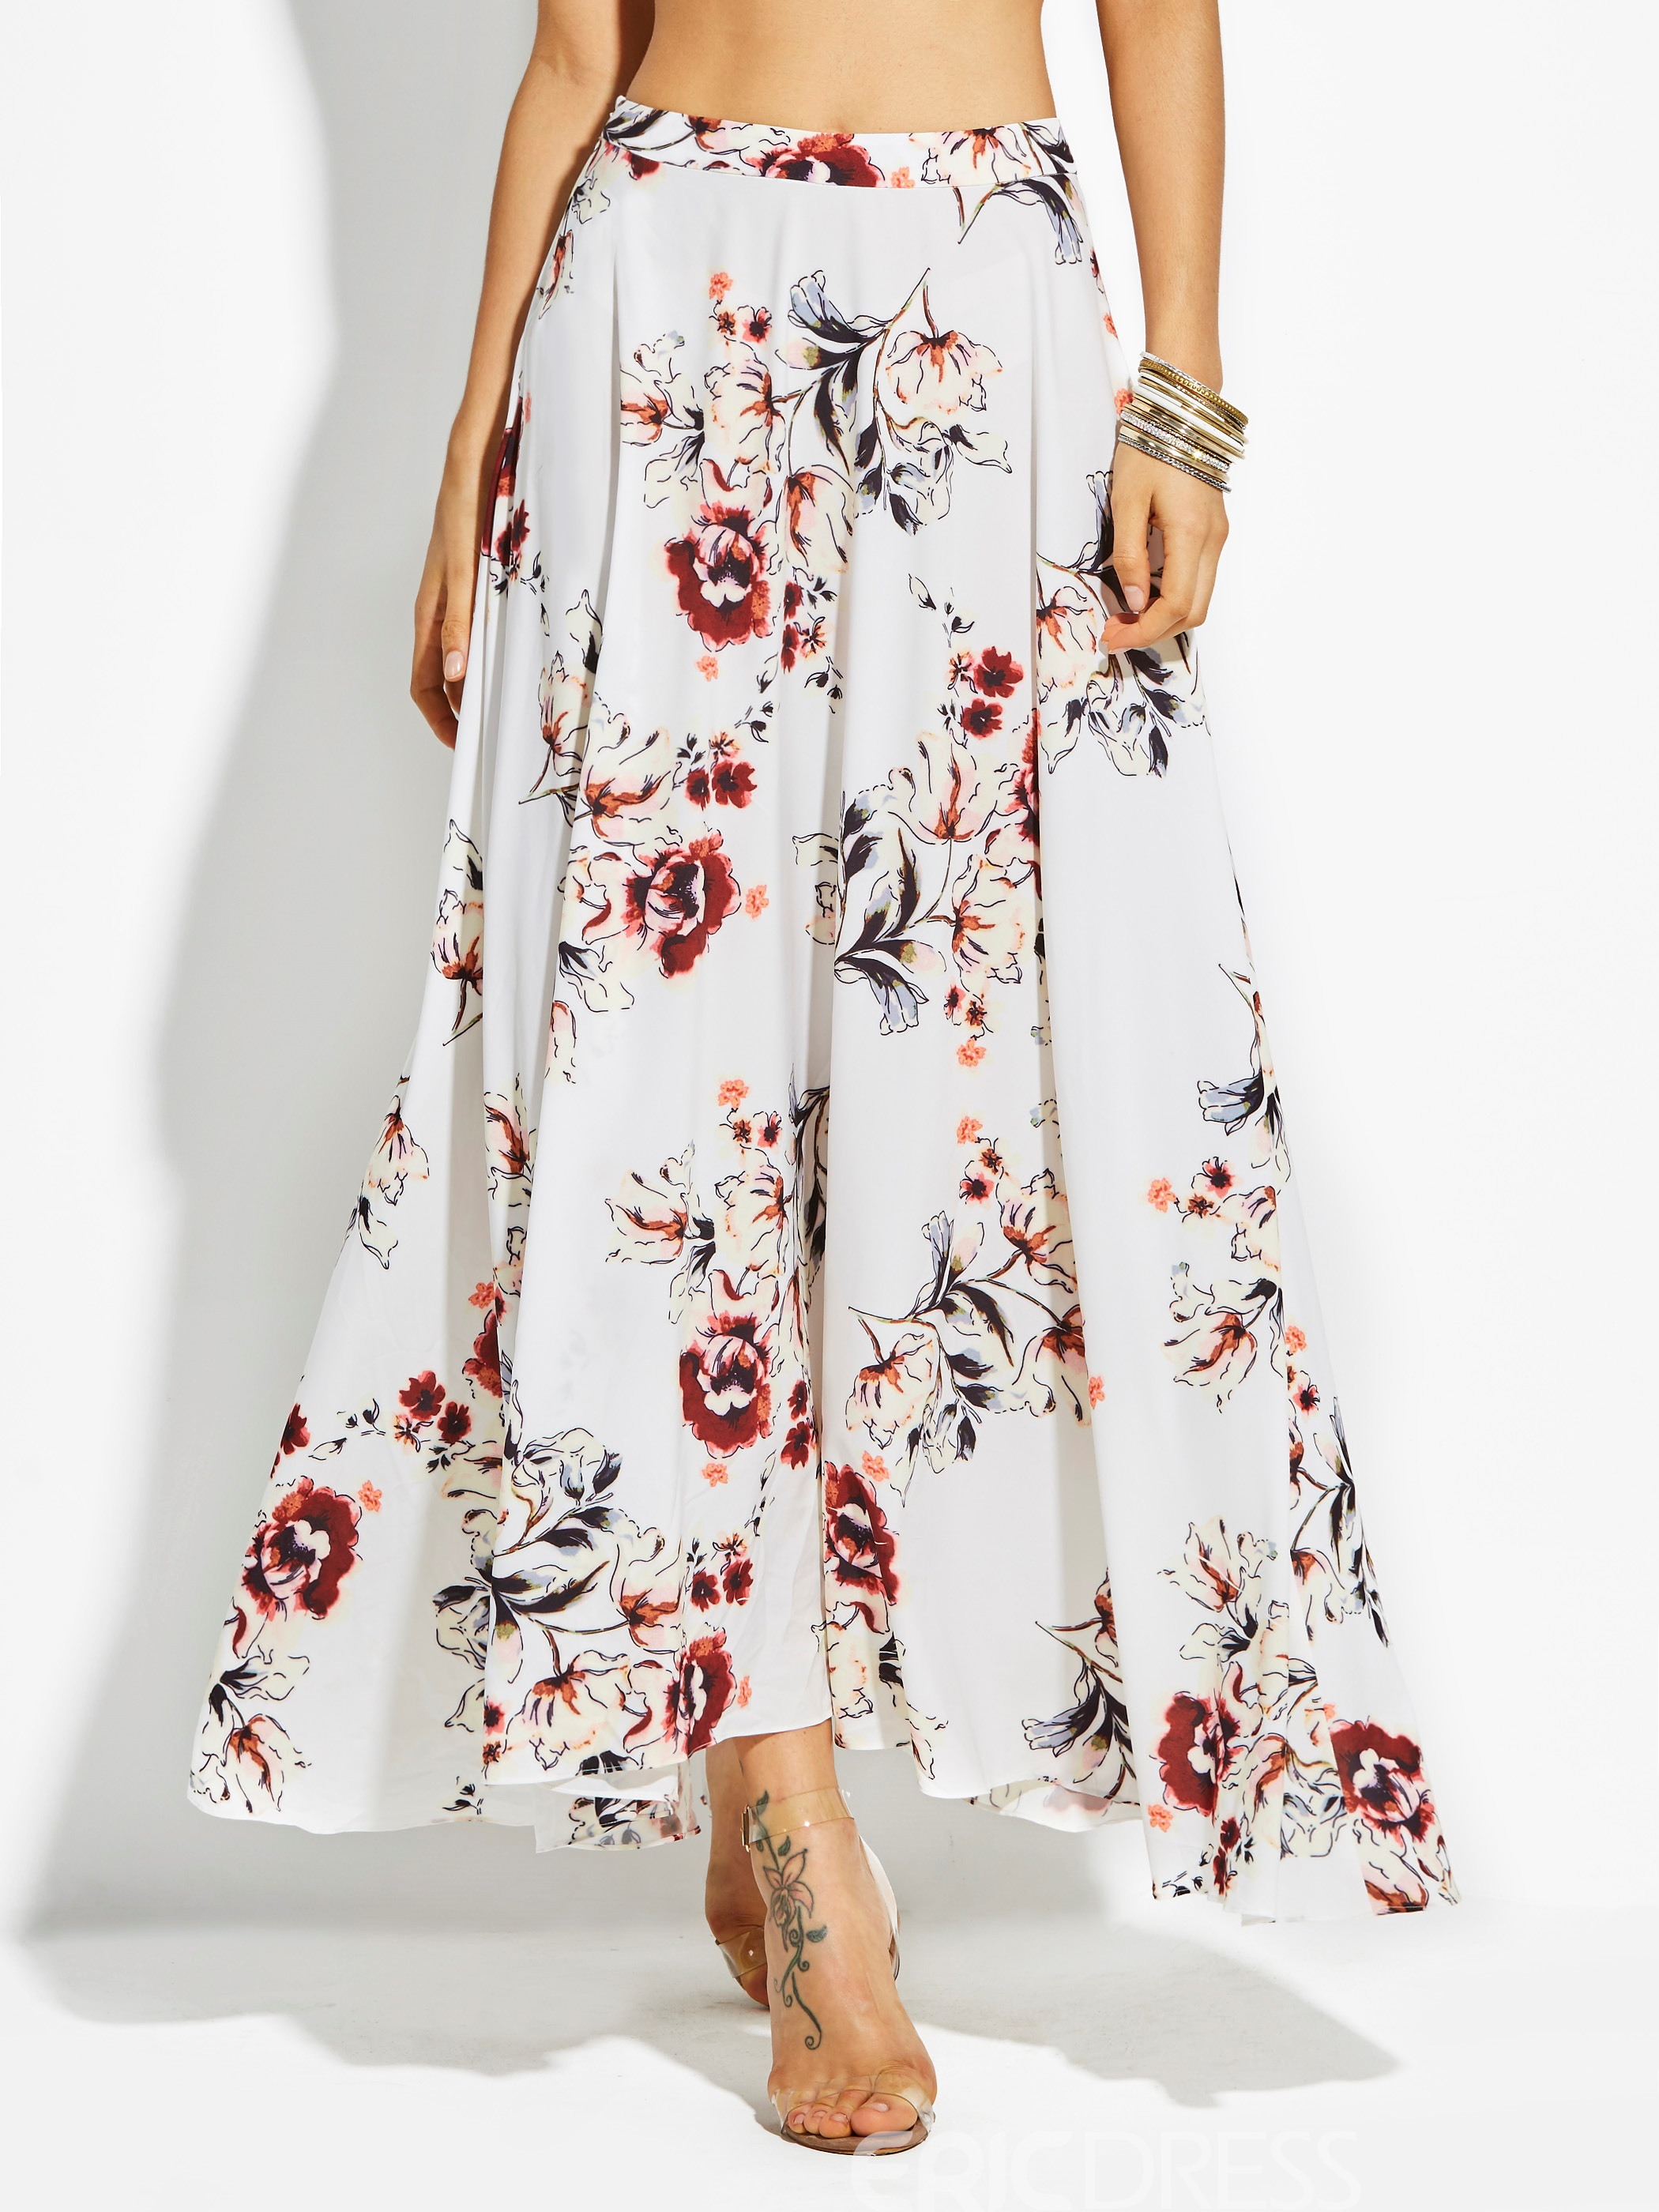 Flower Print Ankle-Length Chiffon Women's Skirt